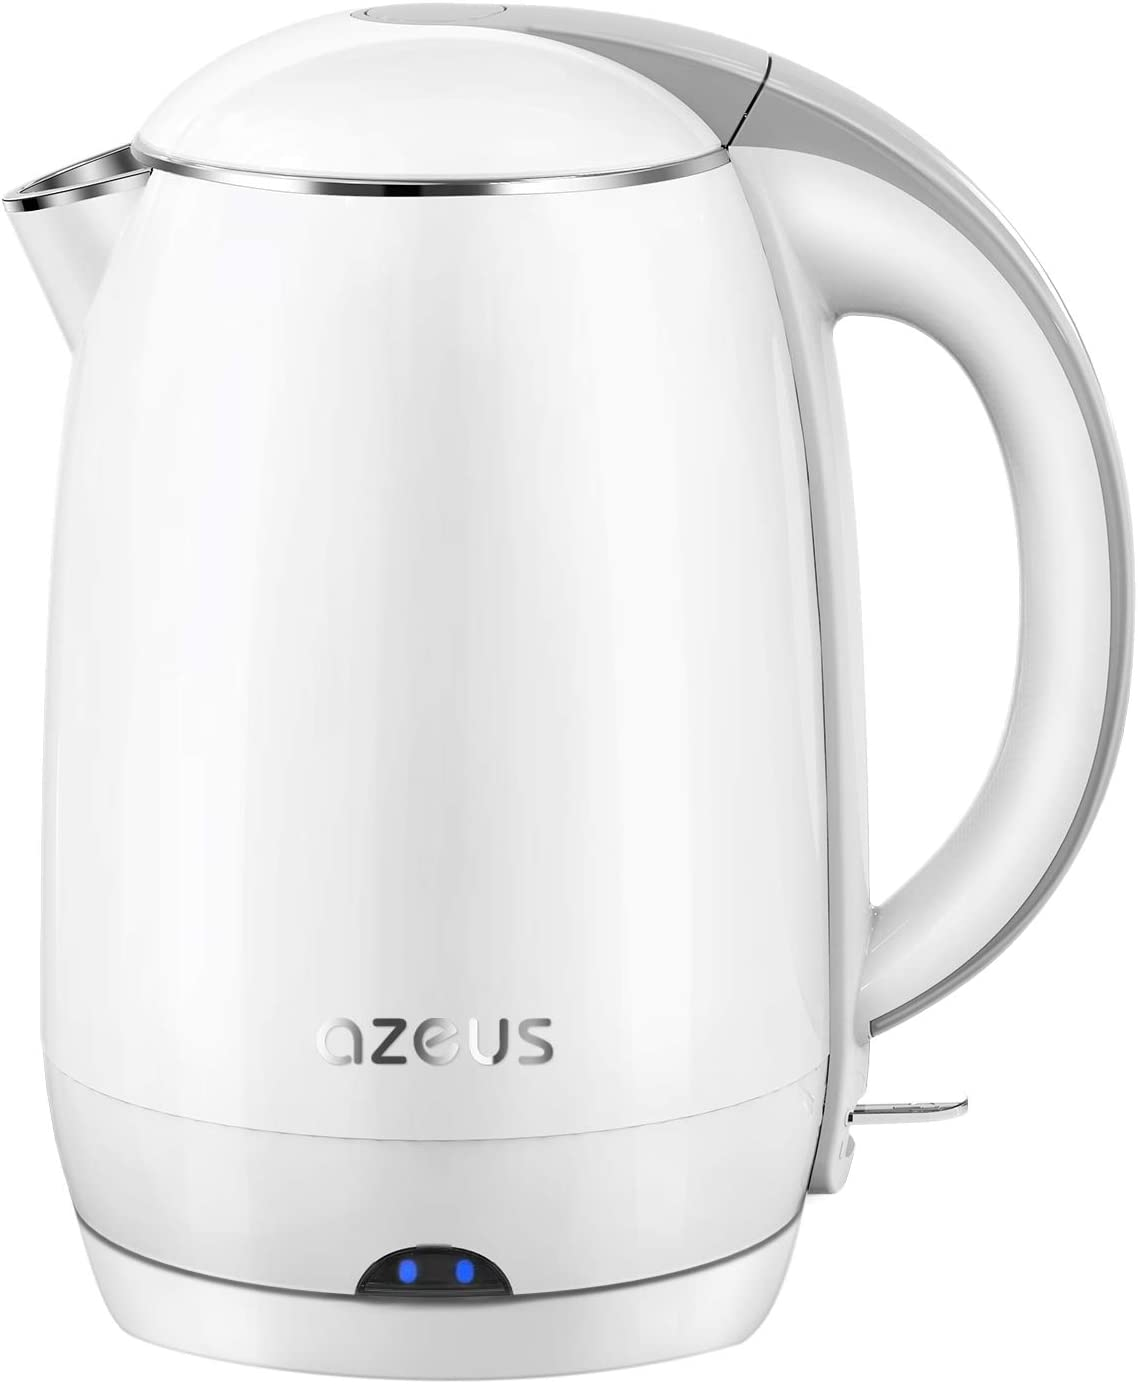 AZEUS Electric Kettle(BPA Free), 1.9 Qt Double Wall Water Kettle with 304 Stainless Steel, 1500W Fast Boiling Cordless Coffee Pot & Tea Kettle, Auto Shut-Off and Boil-Dry Protection, White